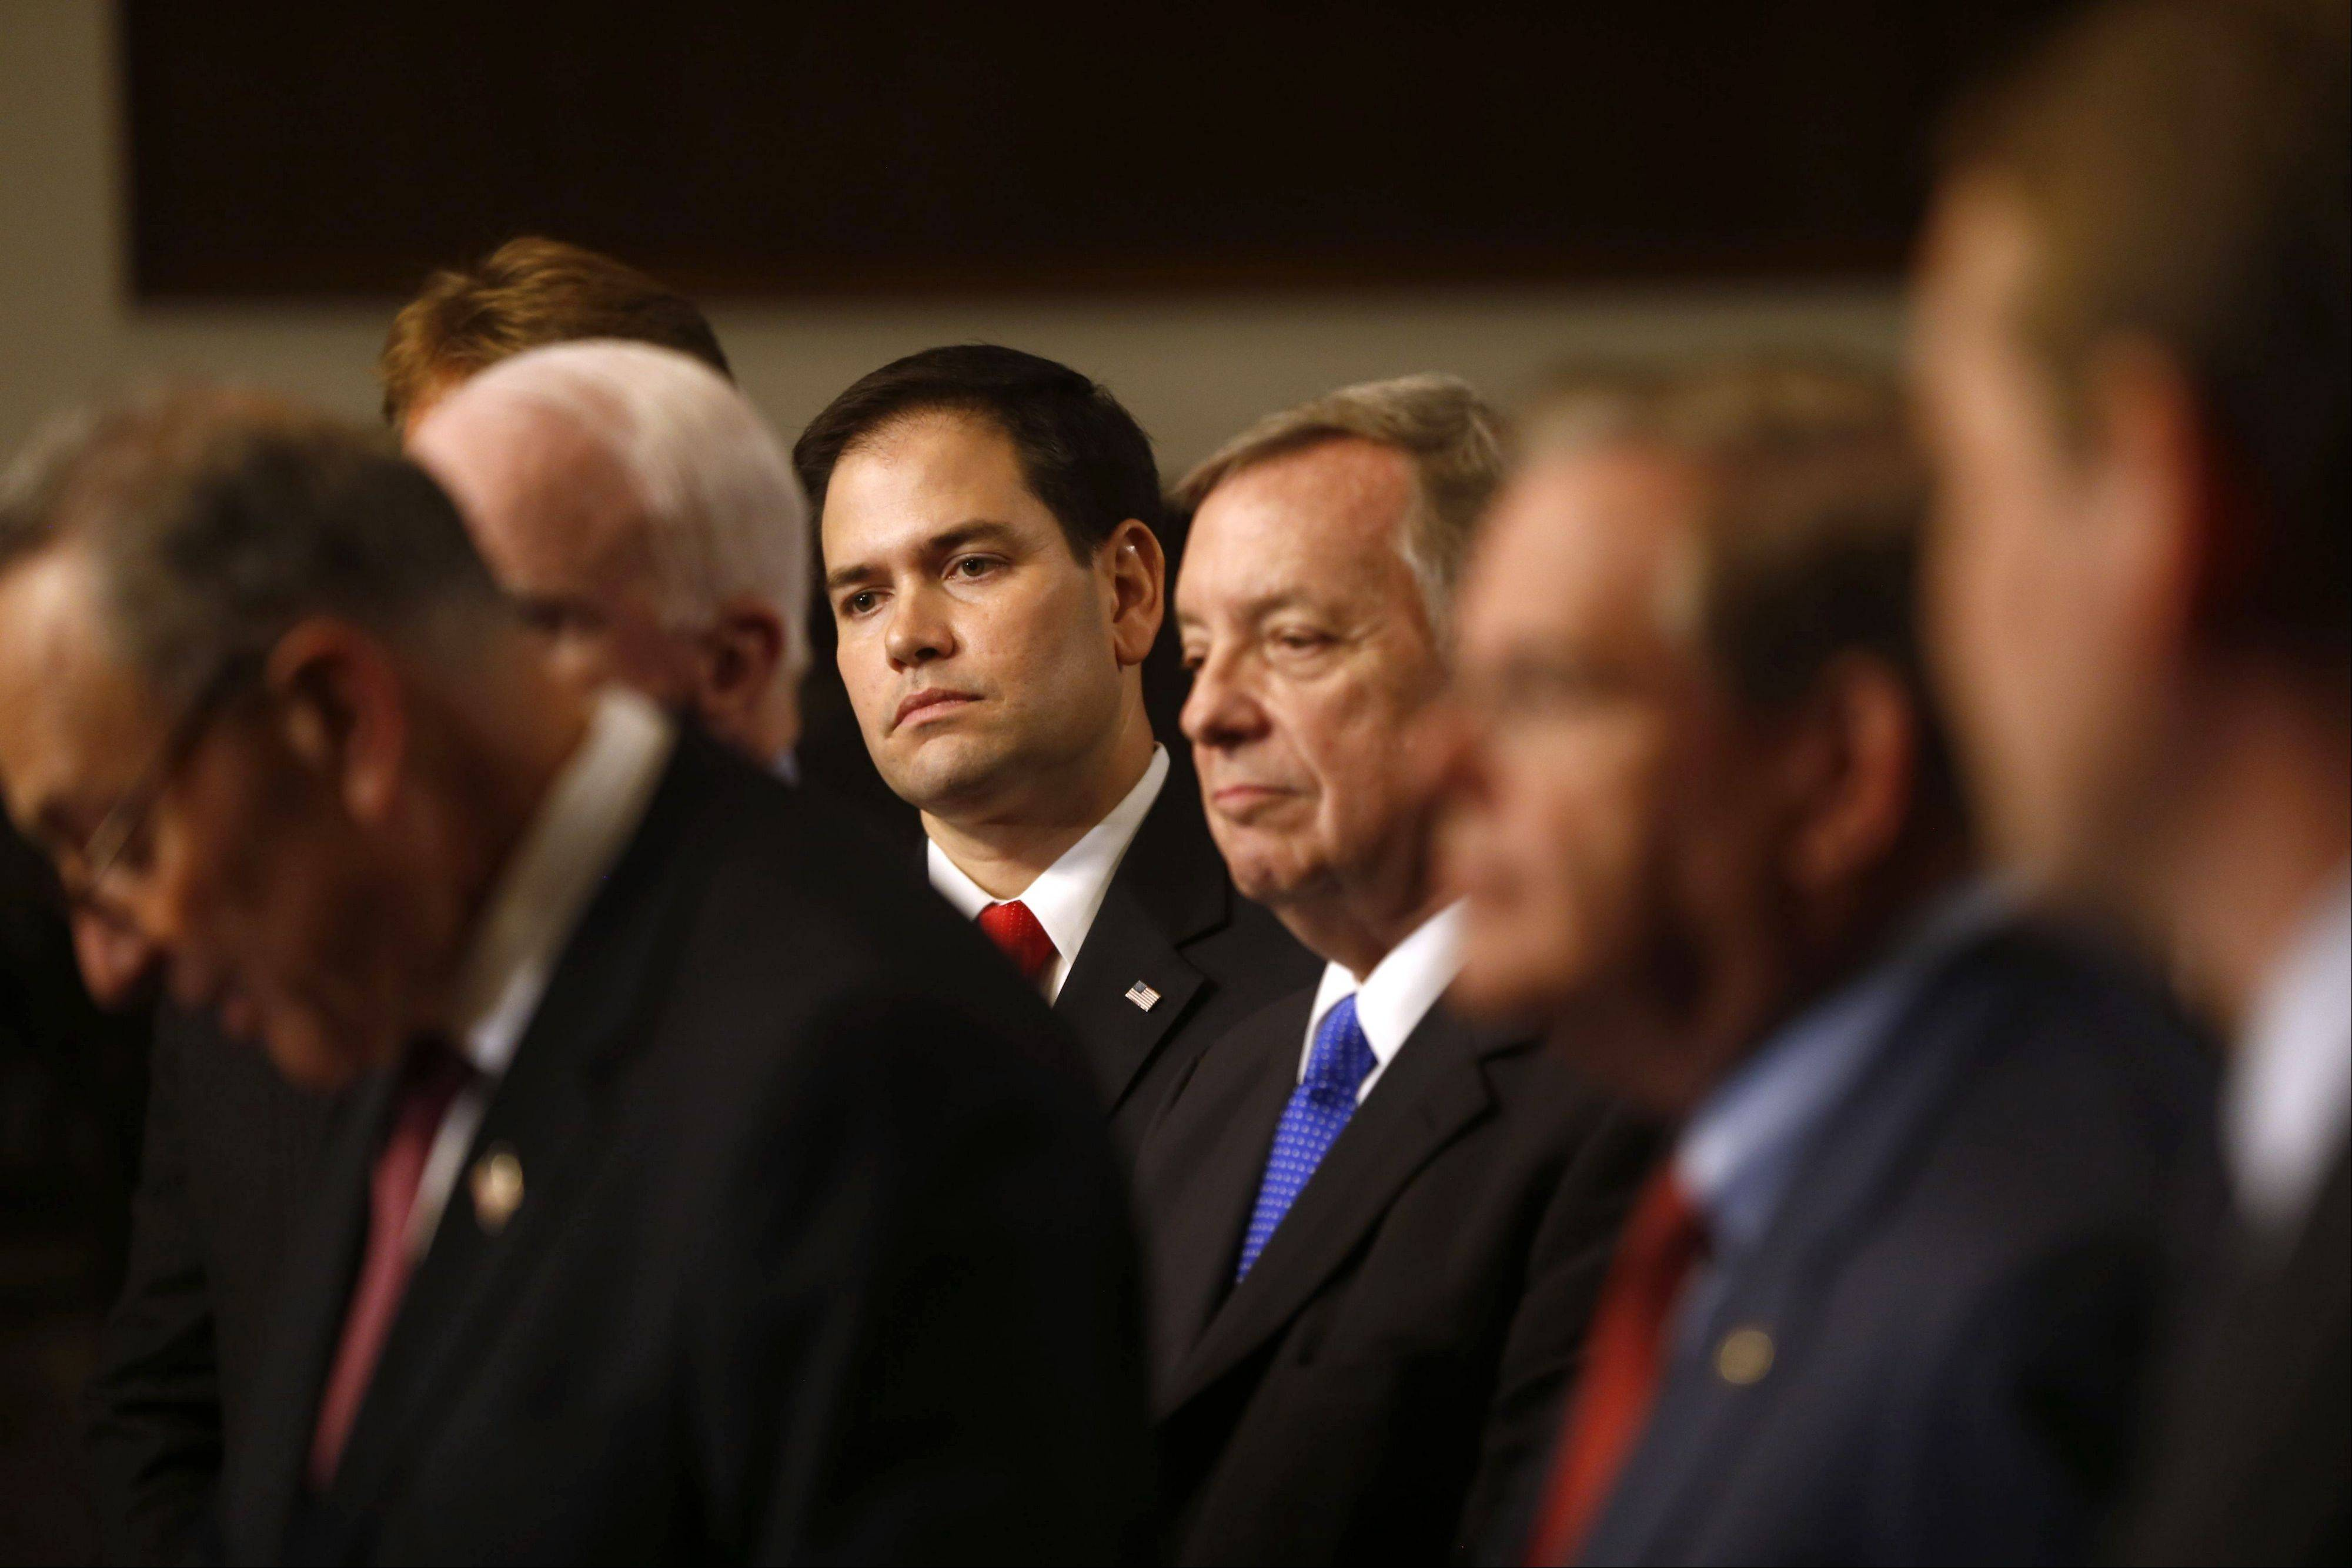 Sen. Marco Rubio, a Florida Republican, center, and others Senators, including Senate Majority Whip Richard Durbin, an Illinois Democrat, to the right of Rubio, discussimmigration legislation last month on Capitol Hill.